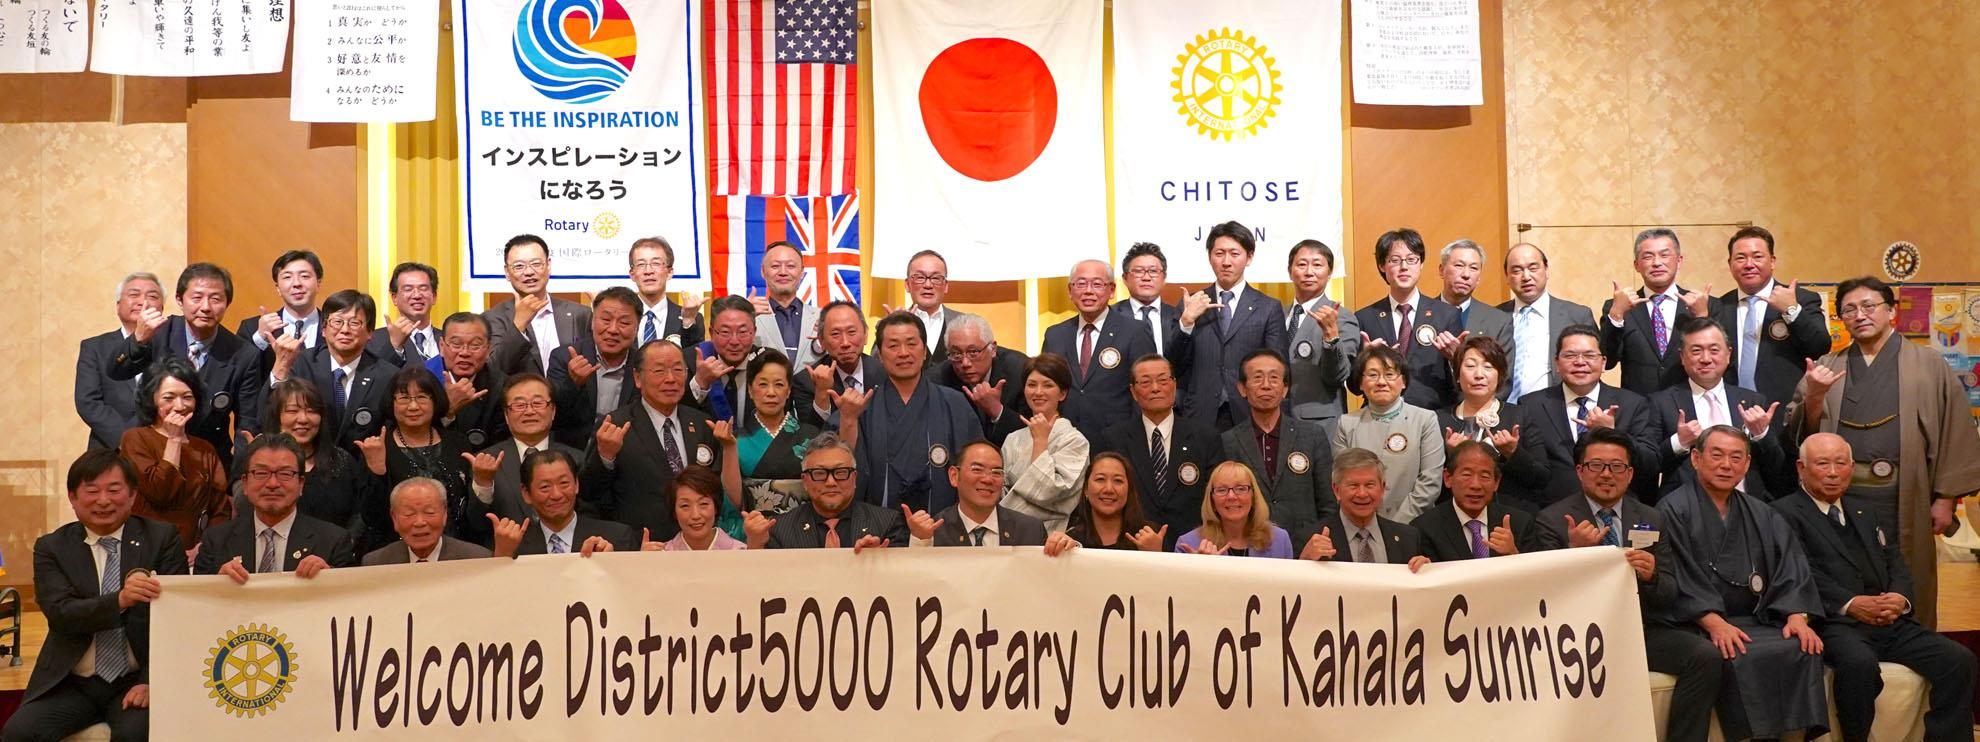 Sister Club Visit to Chitose Rotary